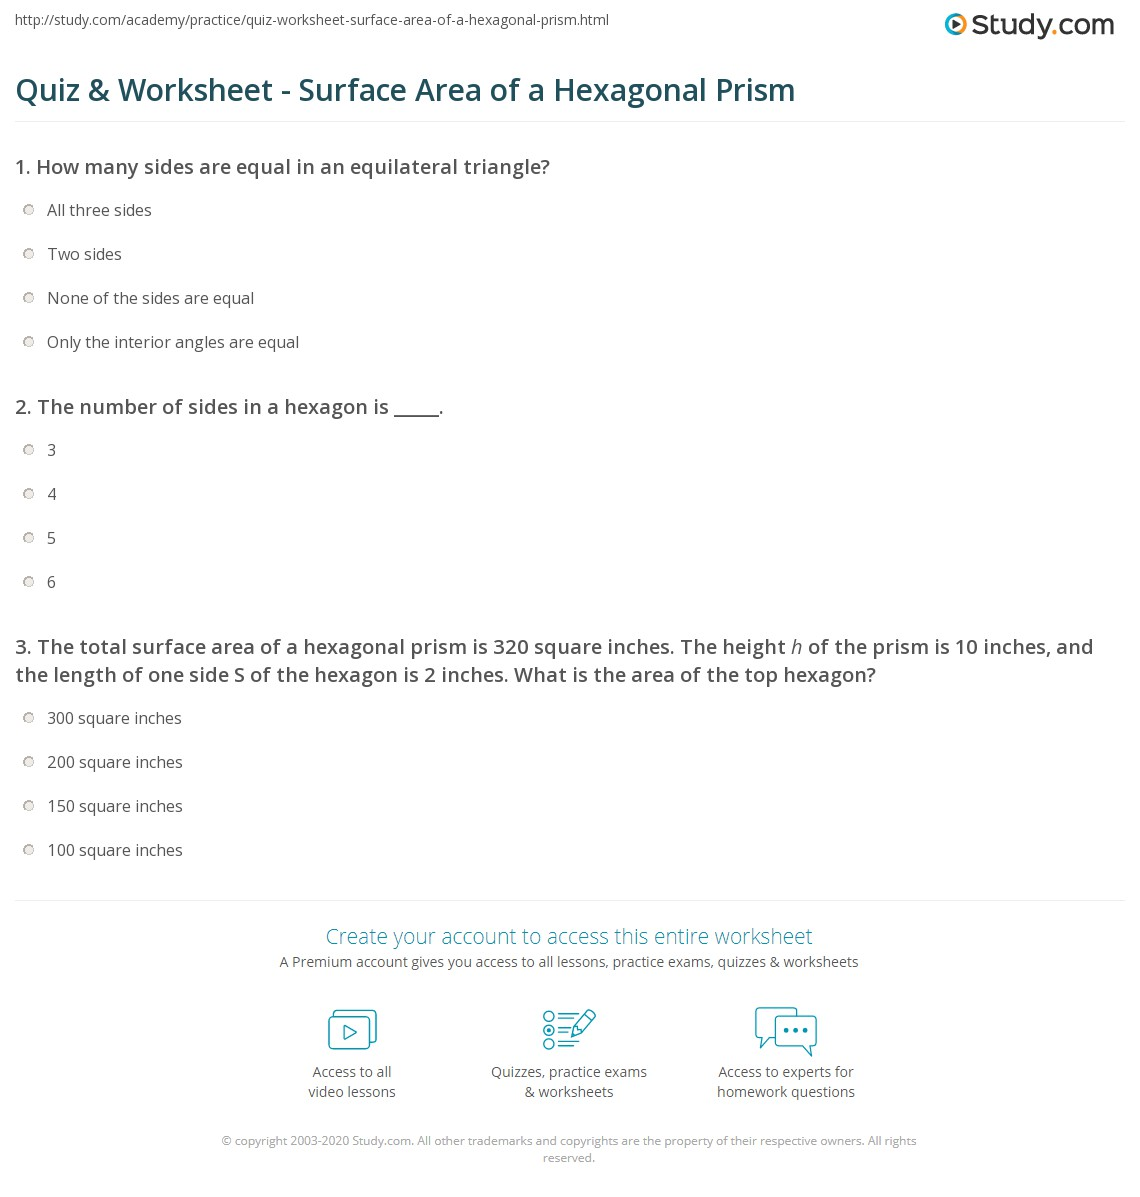 Worksheet Surface Area Of A Hexagonal Prism Quiz Worksheet Surface Area Of  A Hexagonal Prism Study How To Find